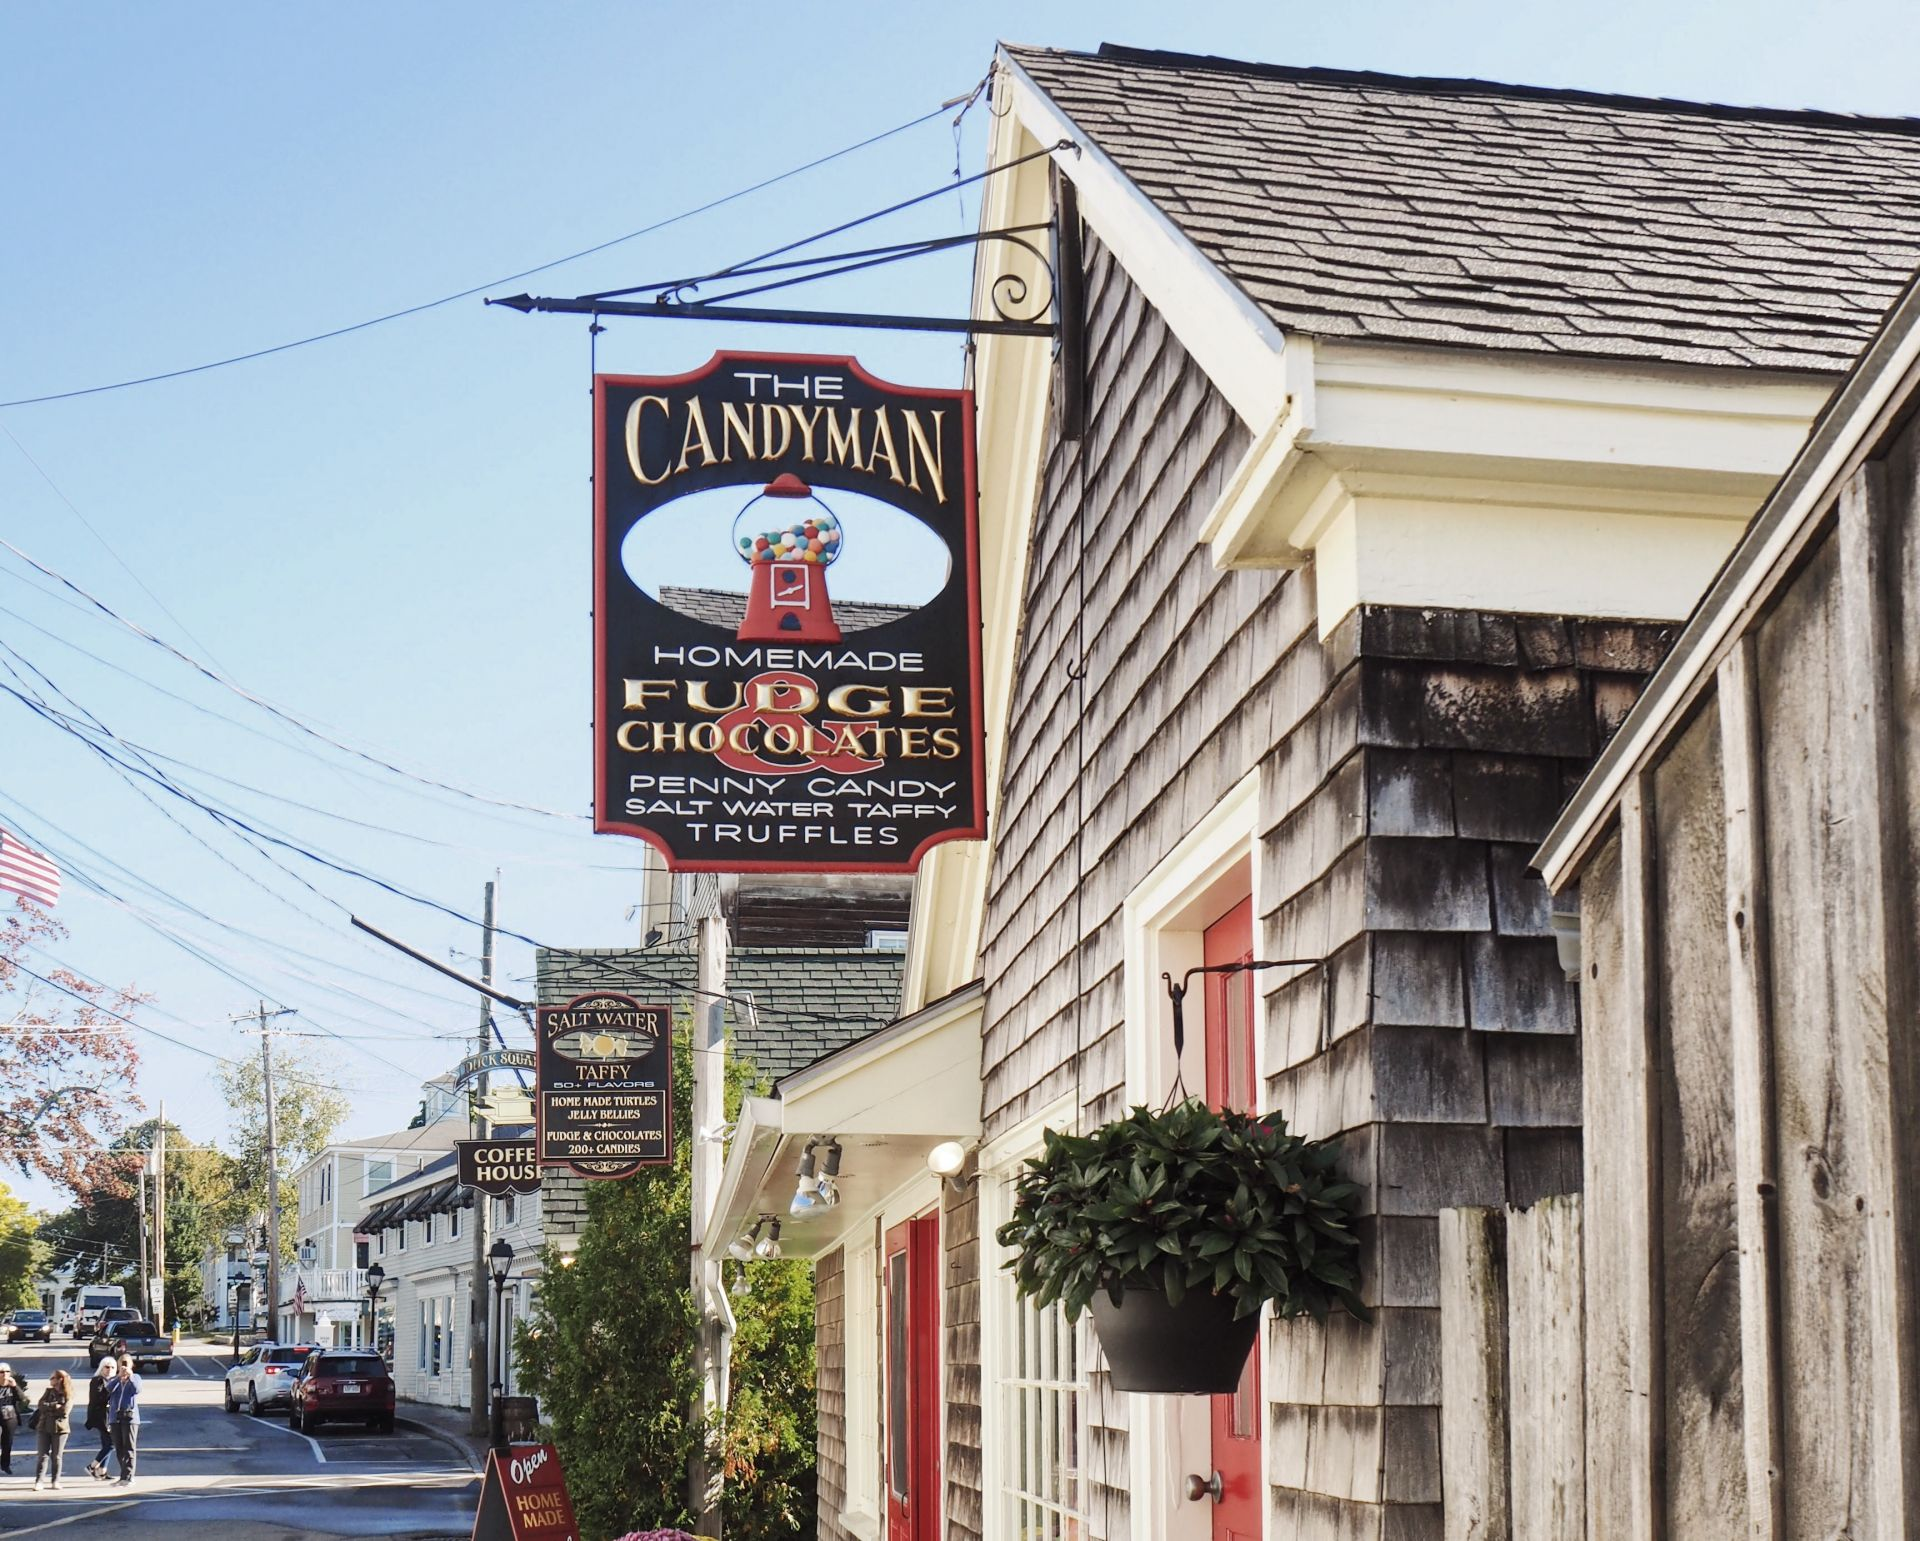 image of the Candyman shop in Kennebunkport